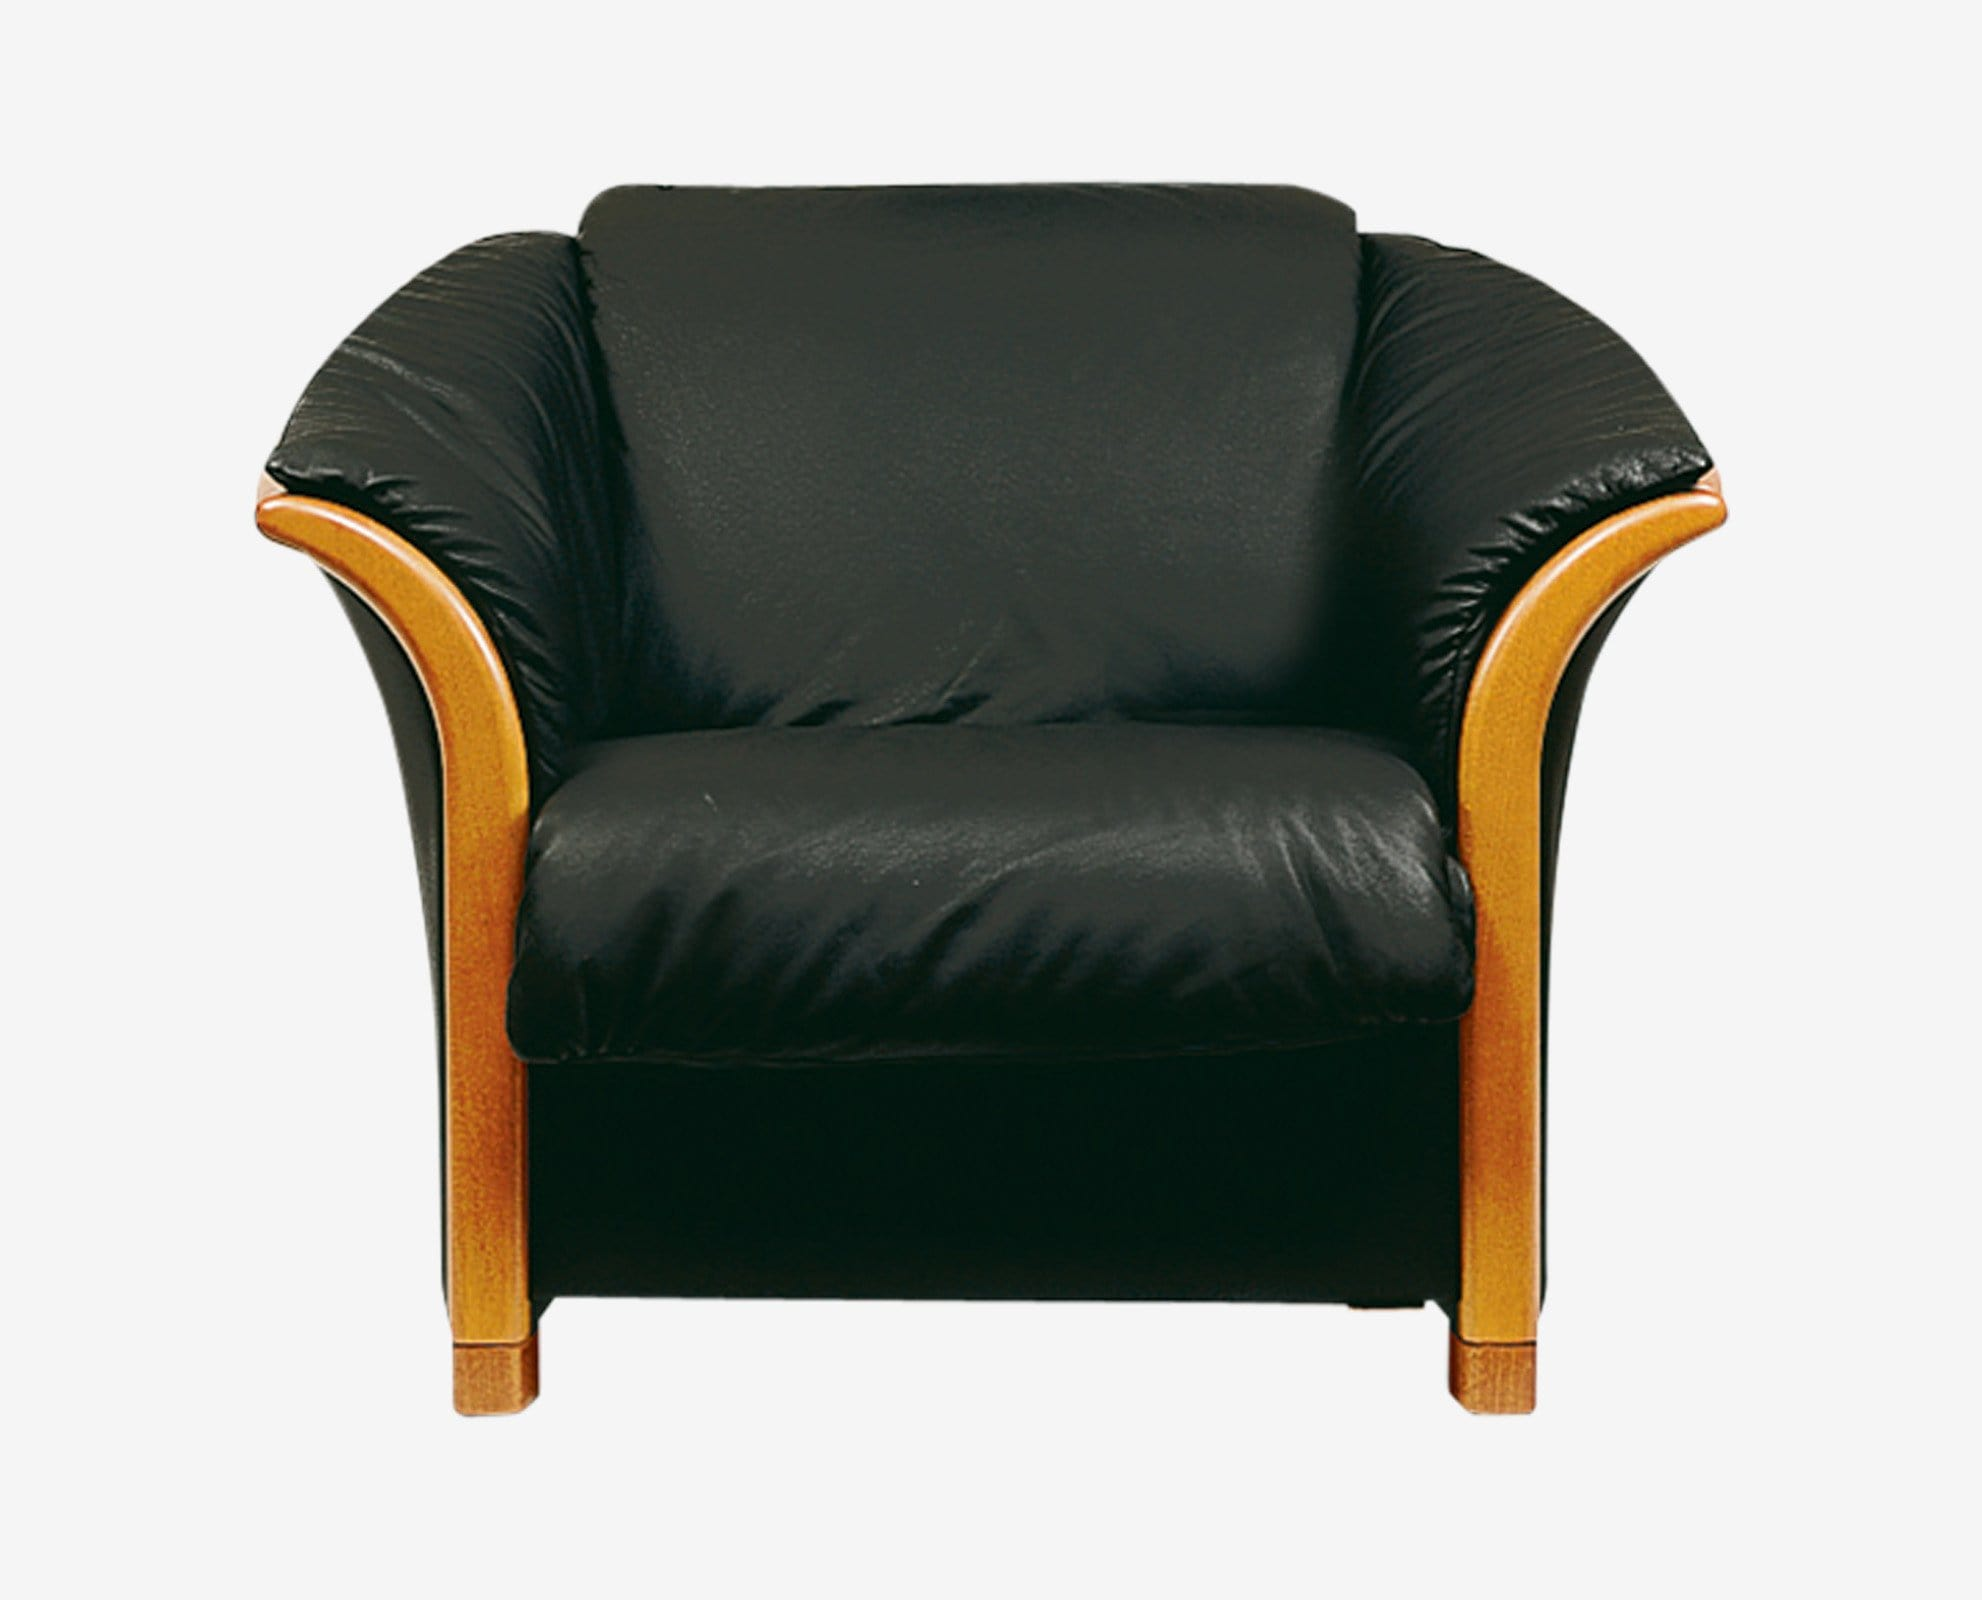 sofa daniafurniture selection collection by furniture leather lombard portland of dania reviews chair quality designs beaverton seattle wonderful scandinavian chairs outlet